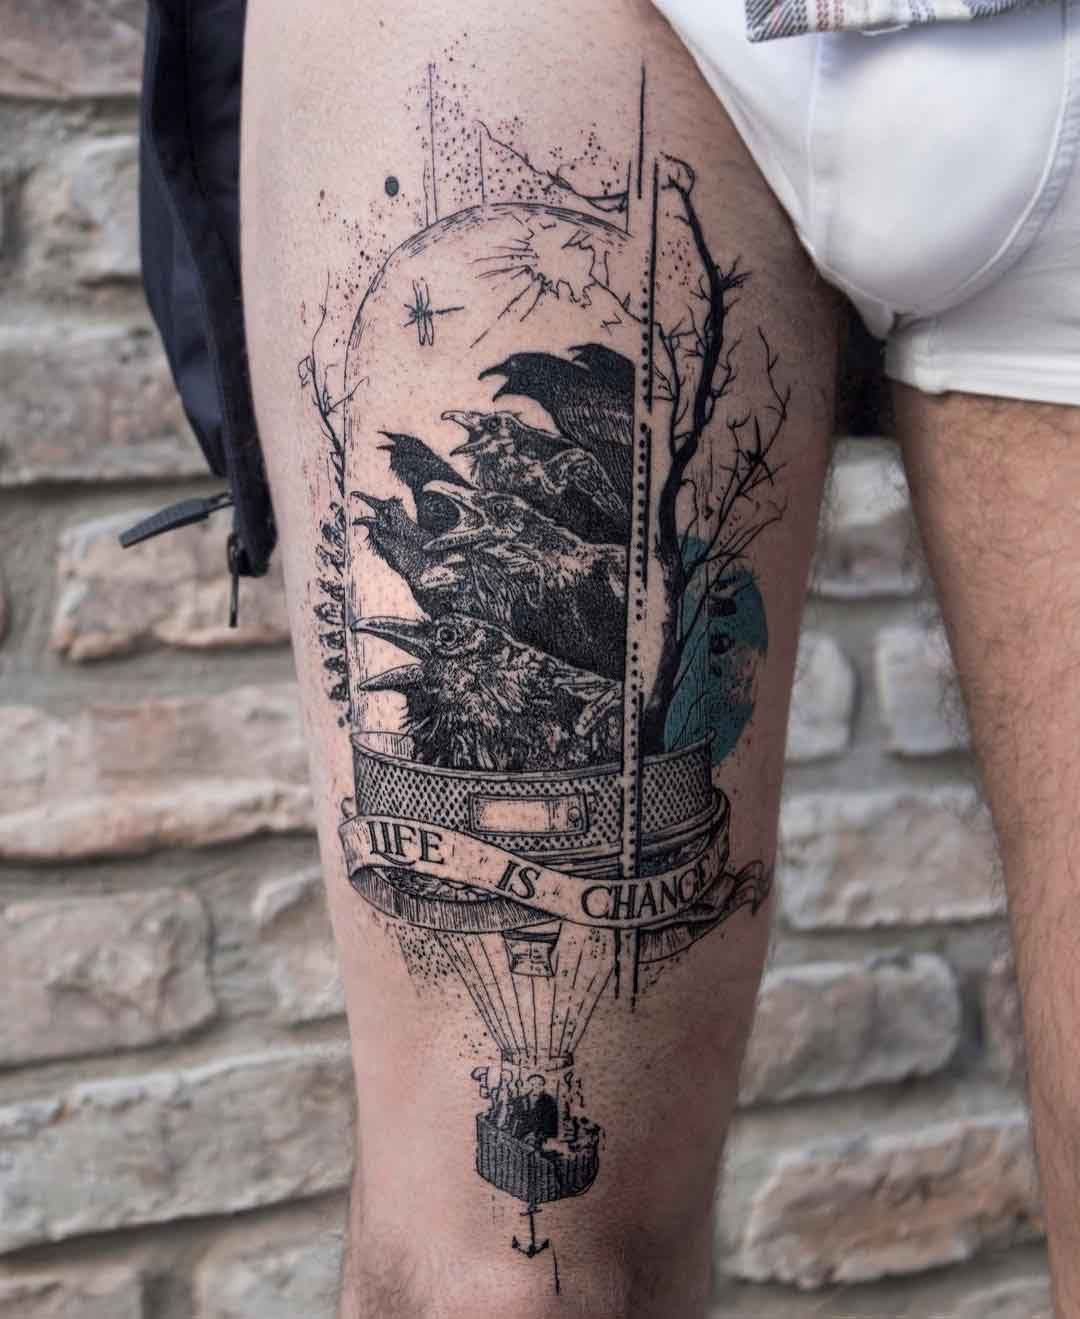 Life is chance tattoo on thigh best tattoo ideas gallery